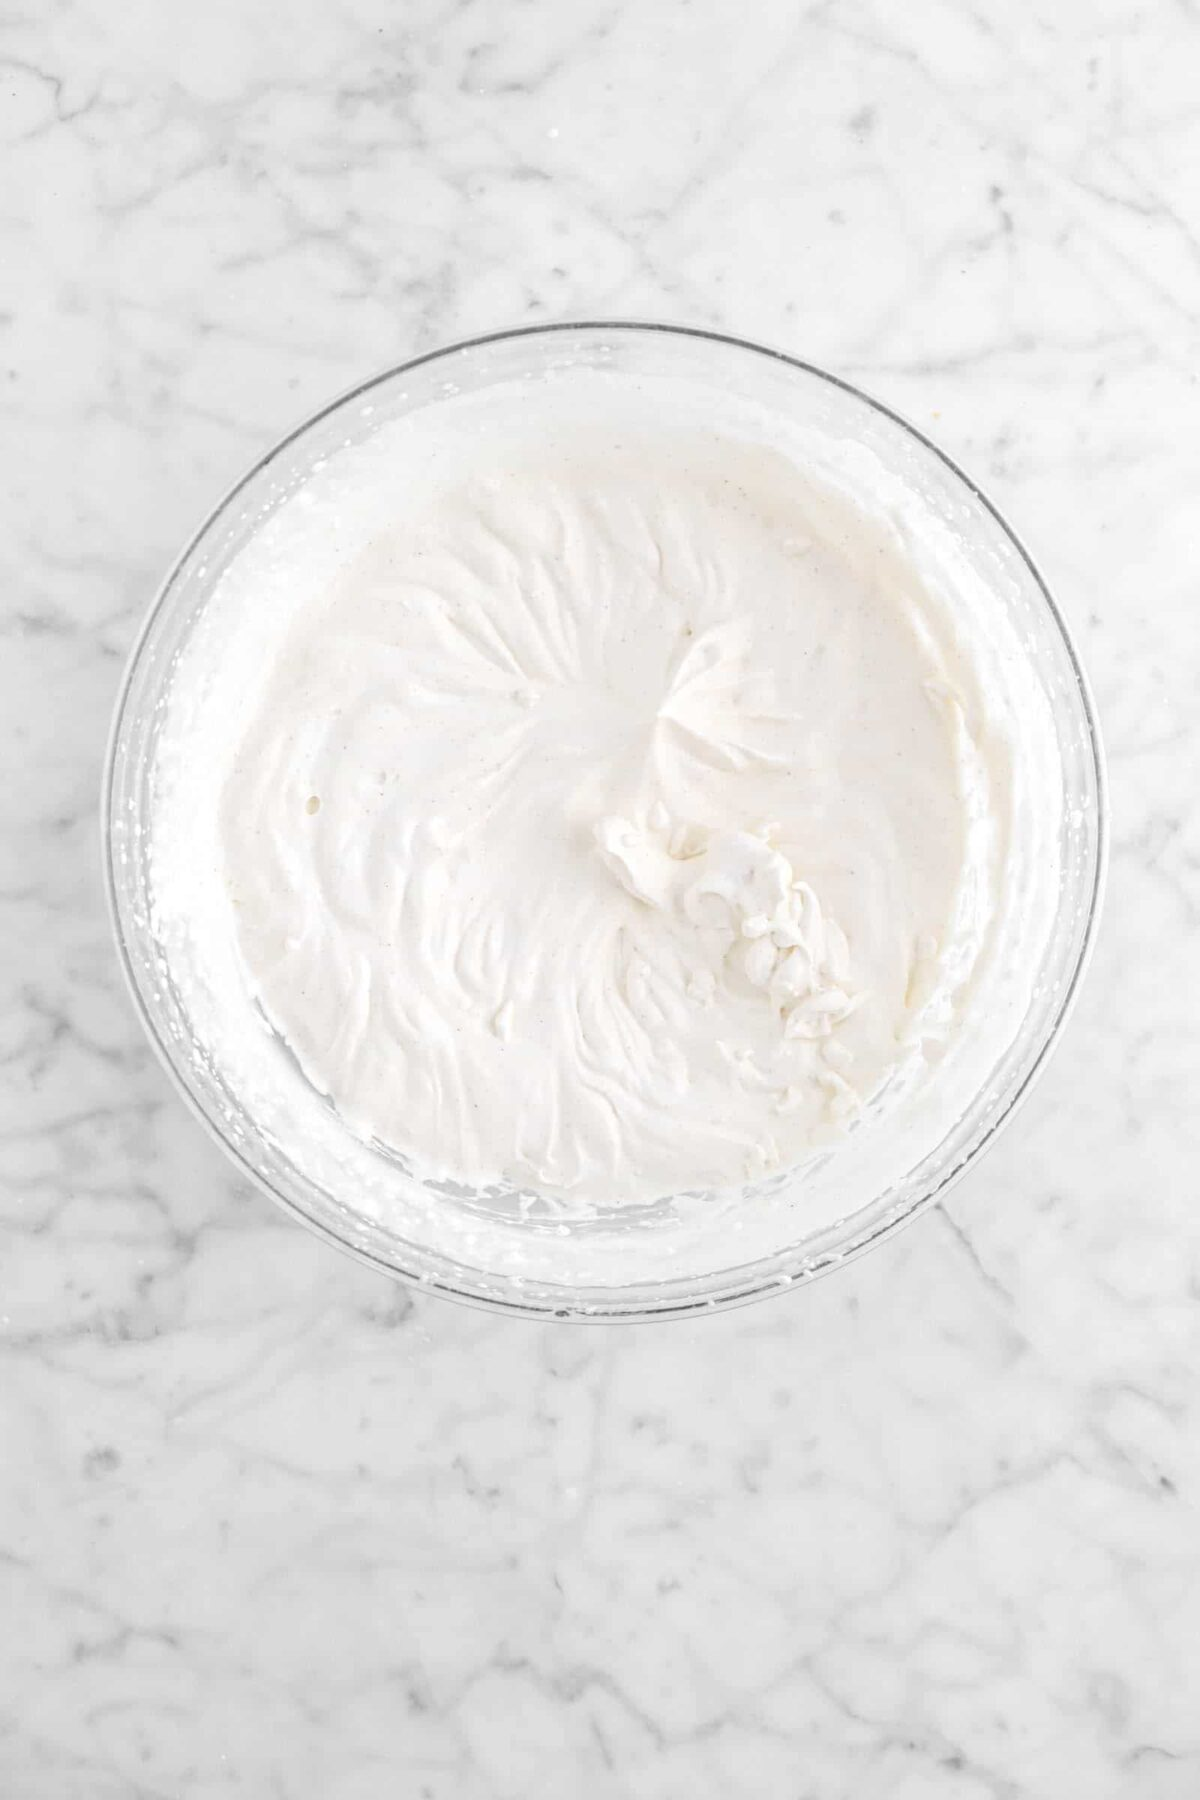 whipped cream in glass bowl